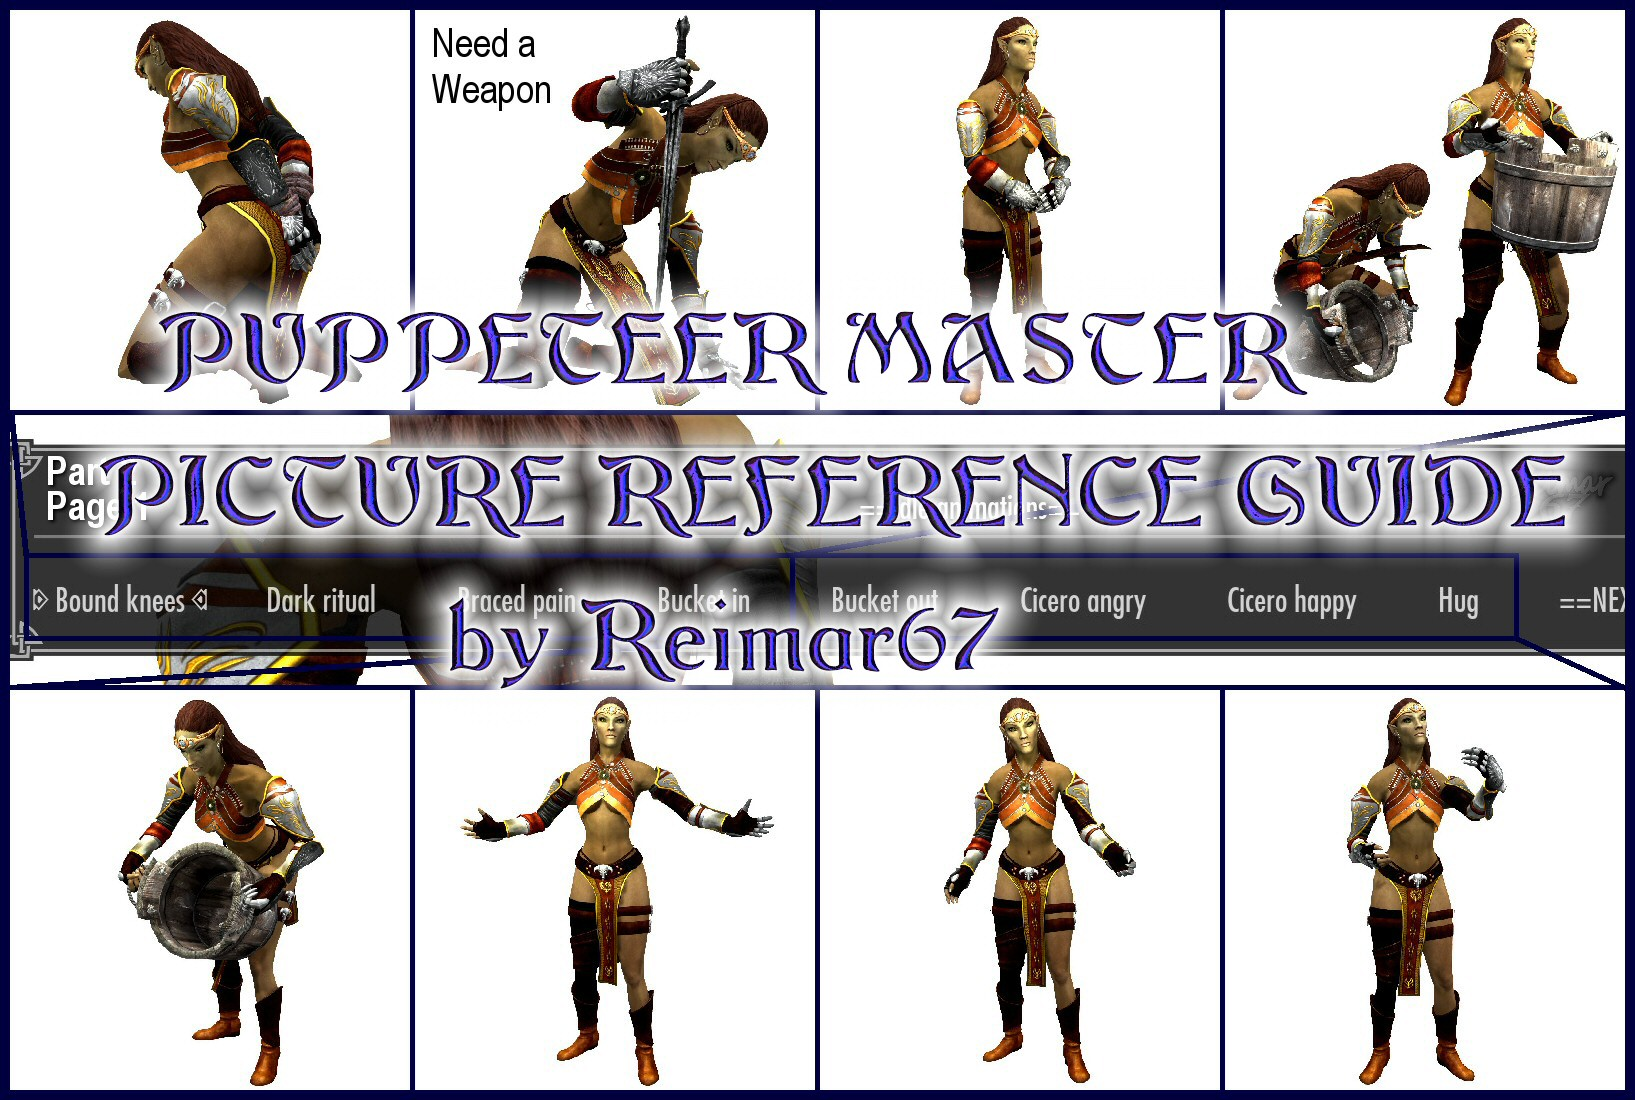 Puppeteer Master Picture Guide - Examples